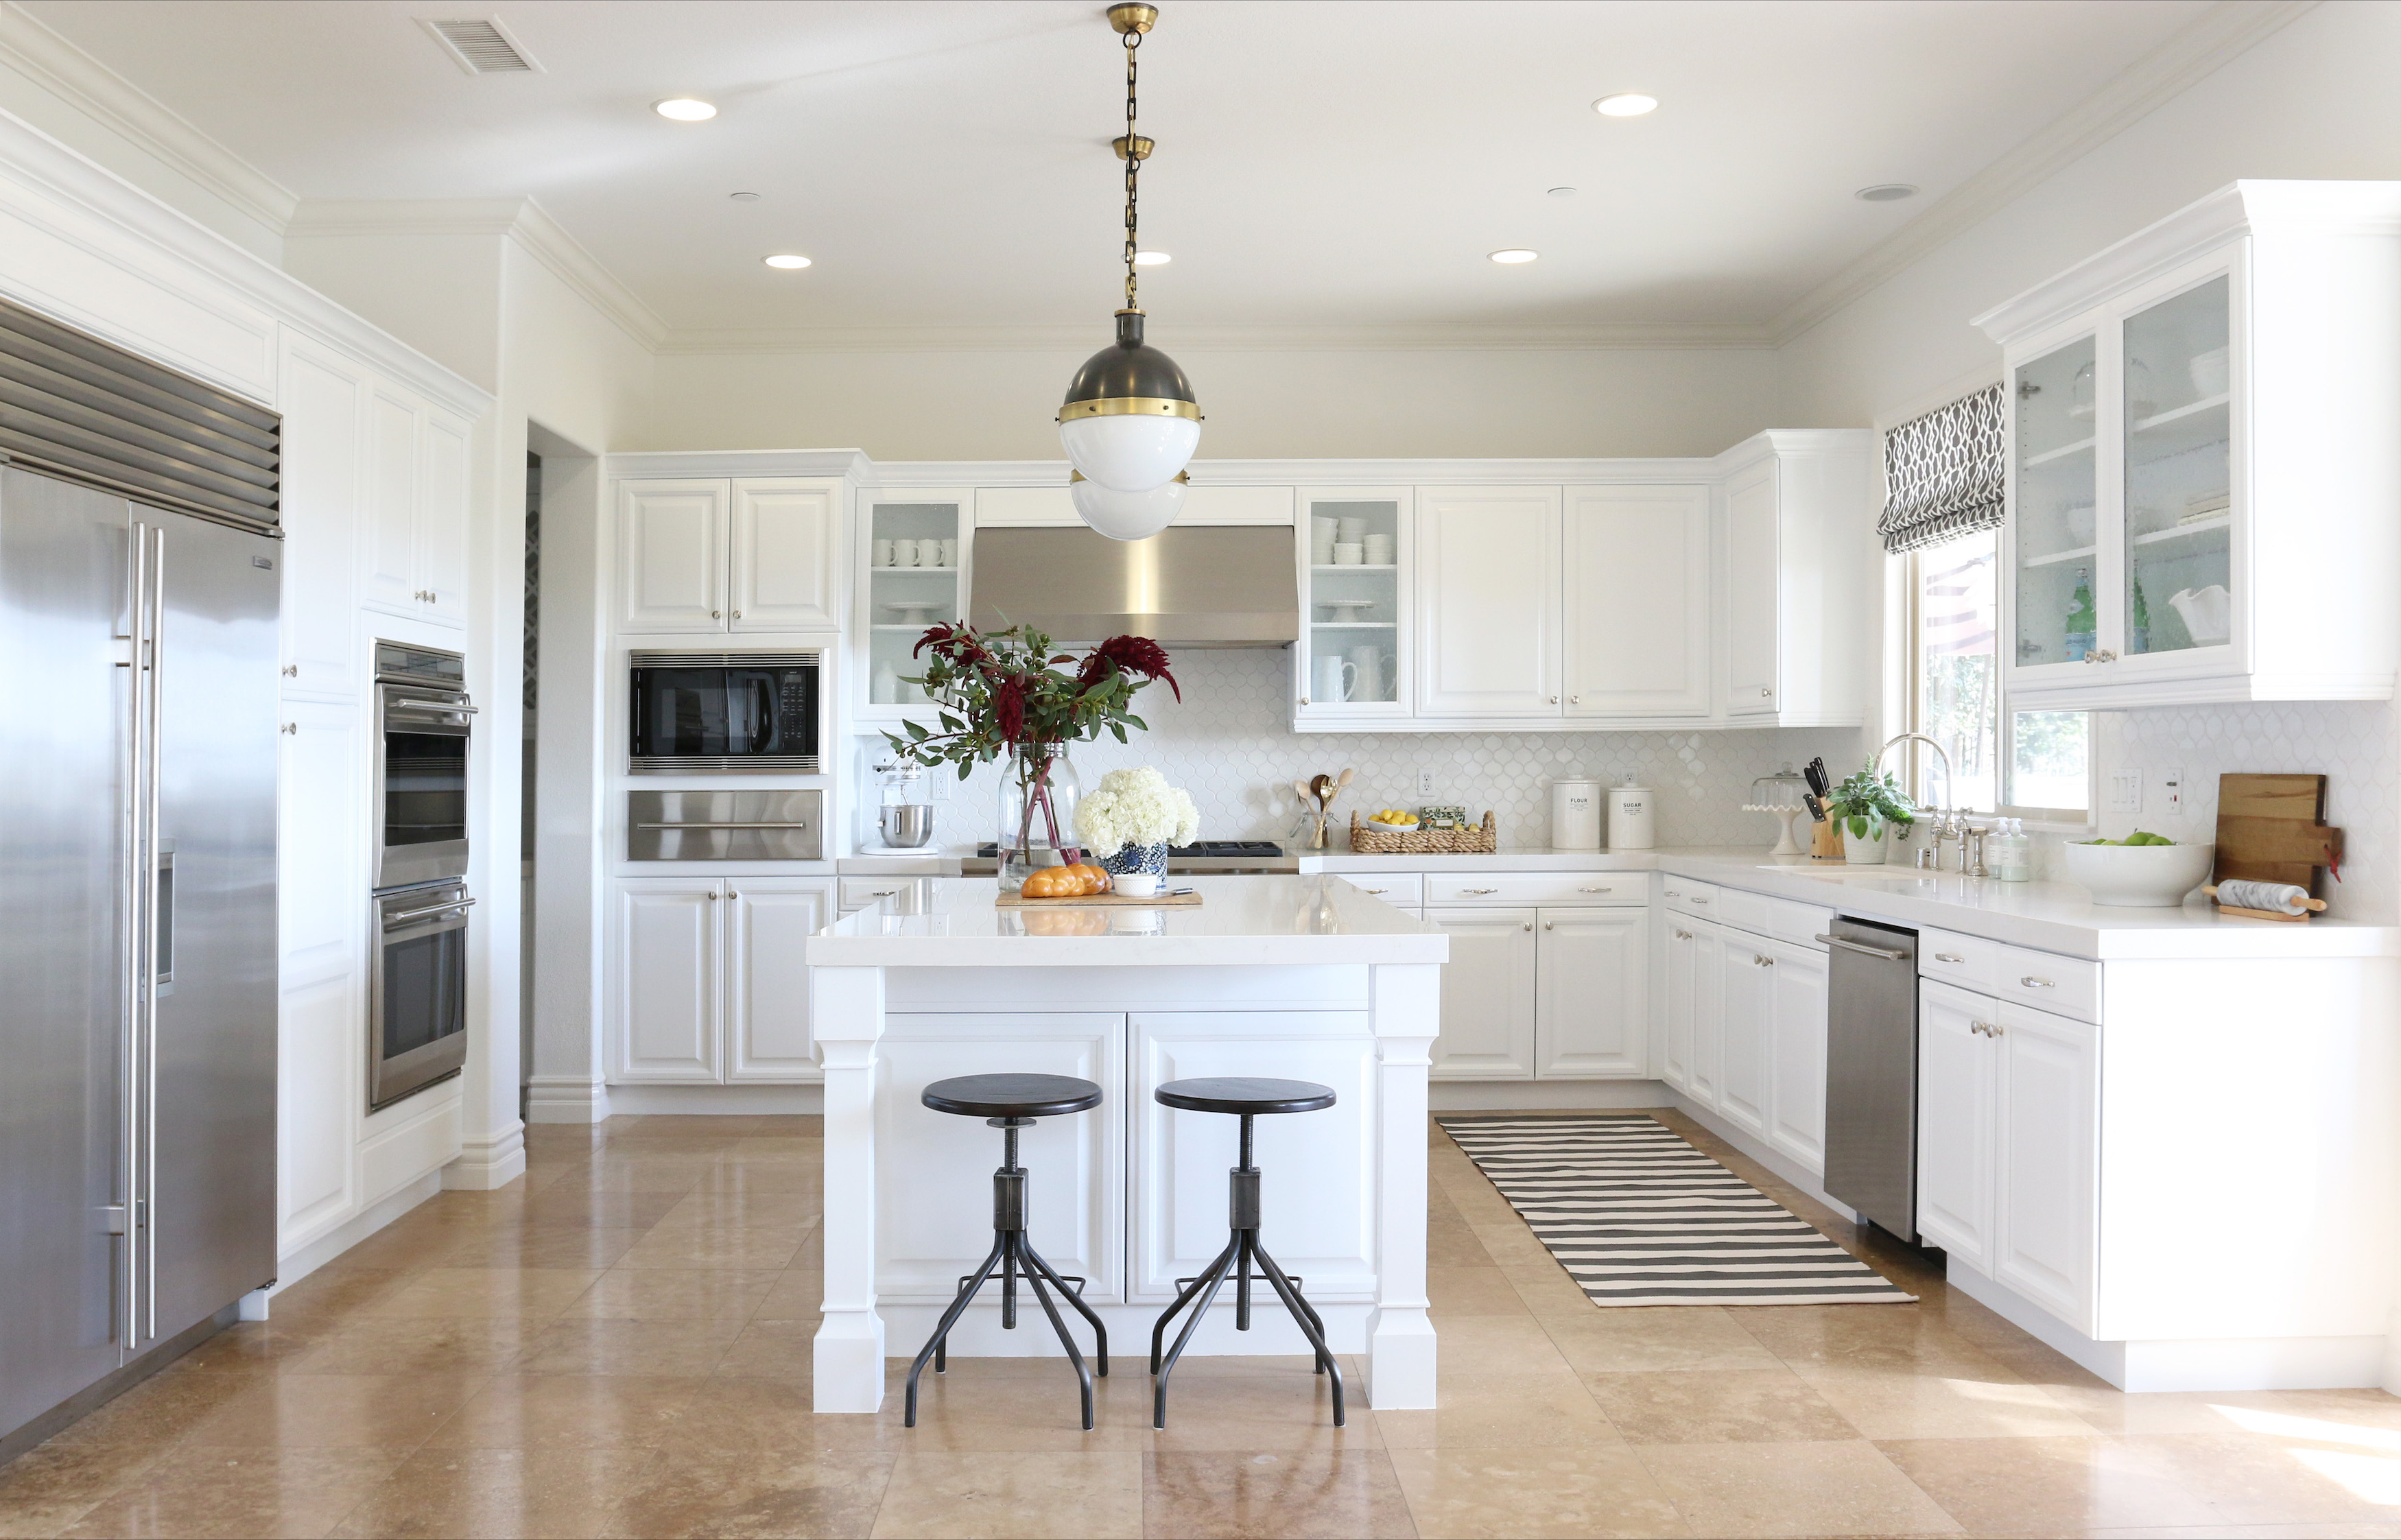 Kitchen White Paint Colors Design Ideas With Cabinets Granite Wooden  Breakfast Bar Stools Modern Wall Floor